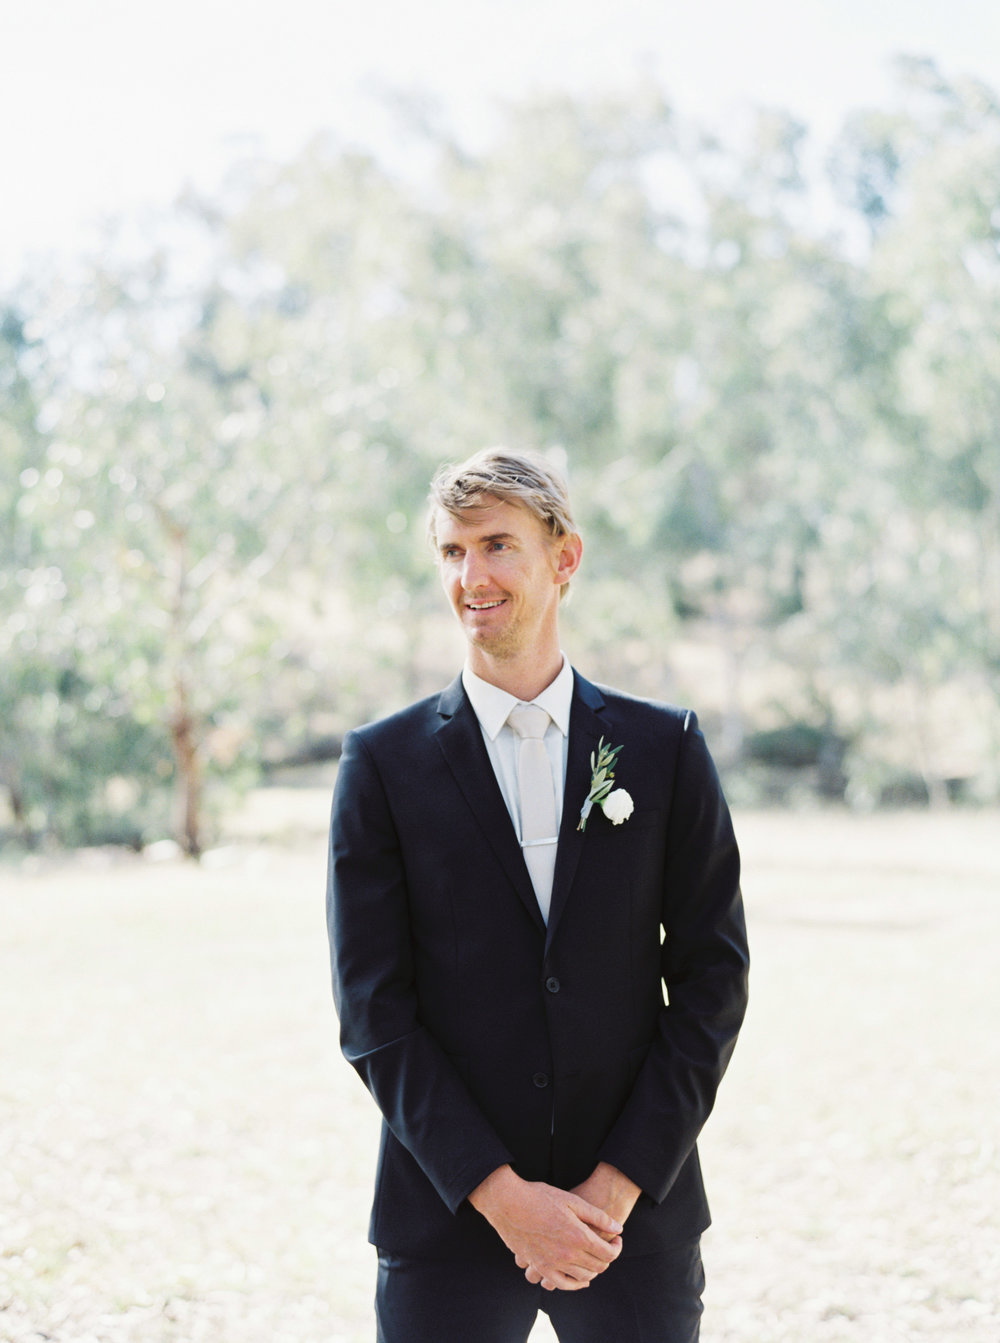 00042- Olive Tree Mediterranean Wedding in Mudgee NSW Australia Fine Art Film Wedding Lifestyle Photographer Sheri McMahon_.jpg